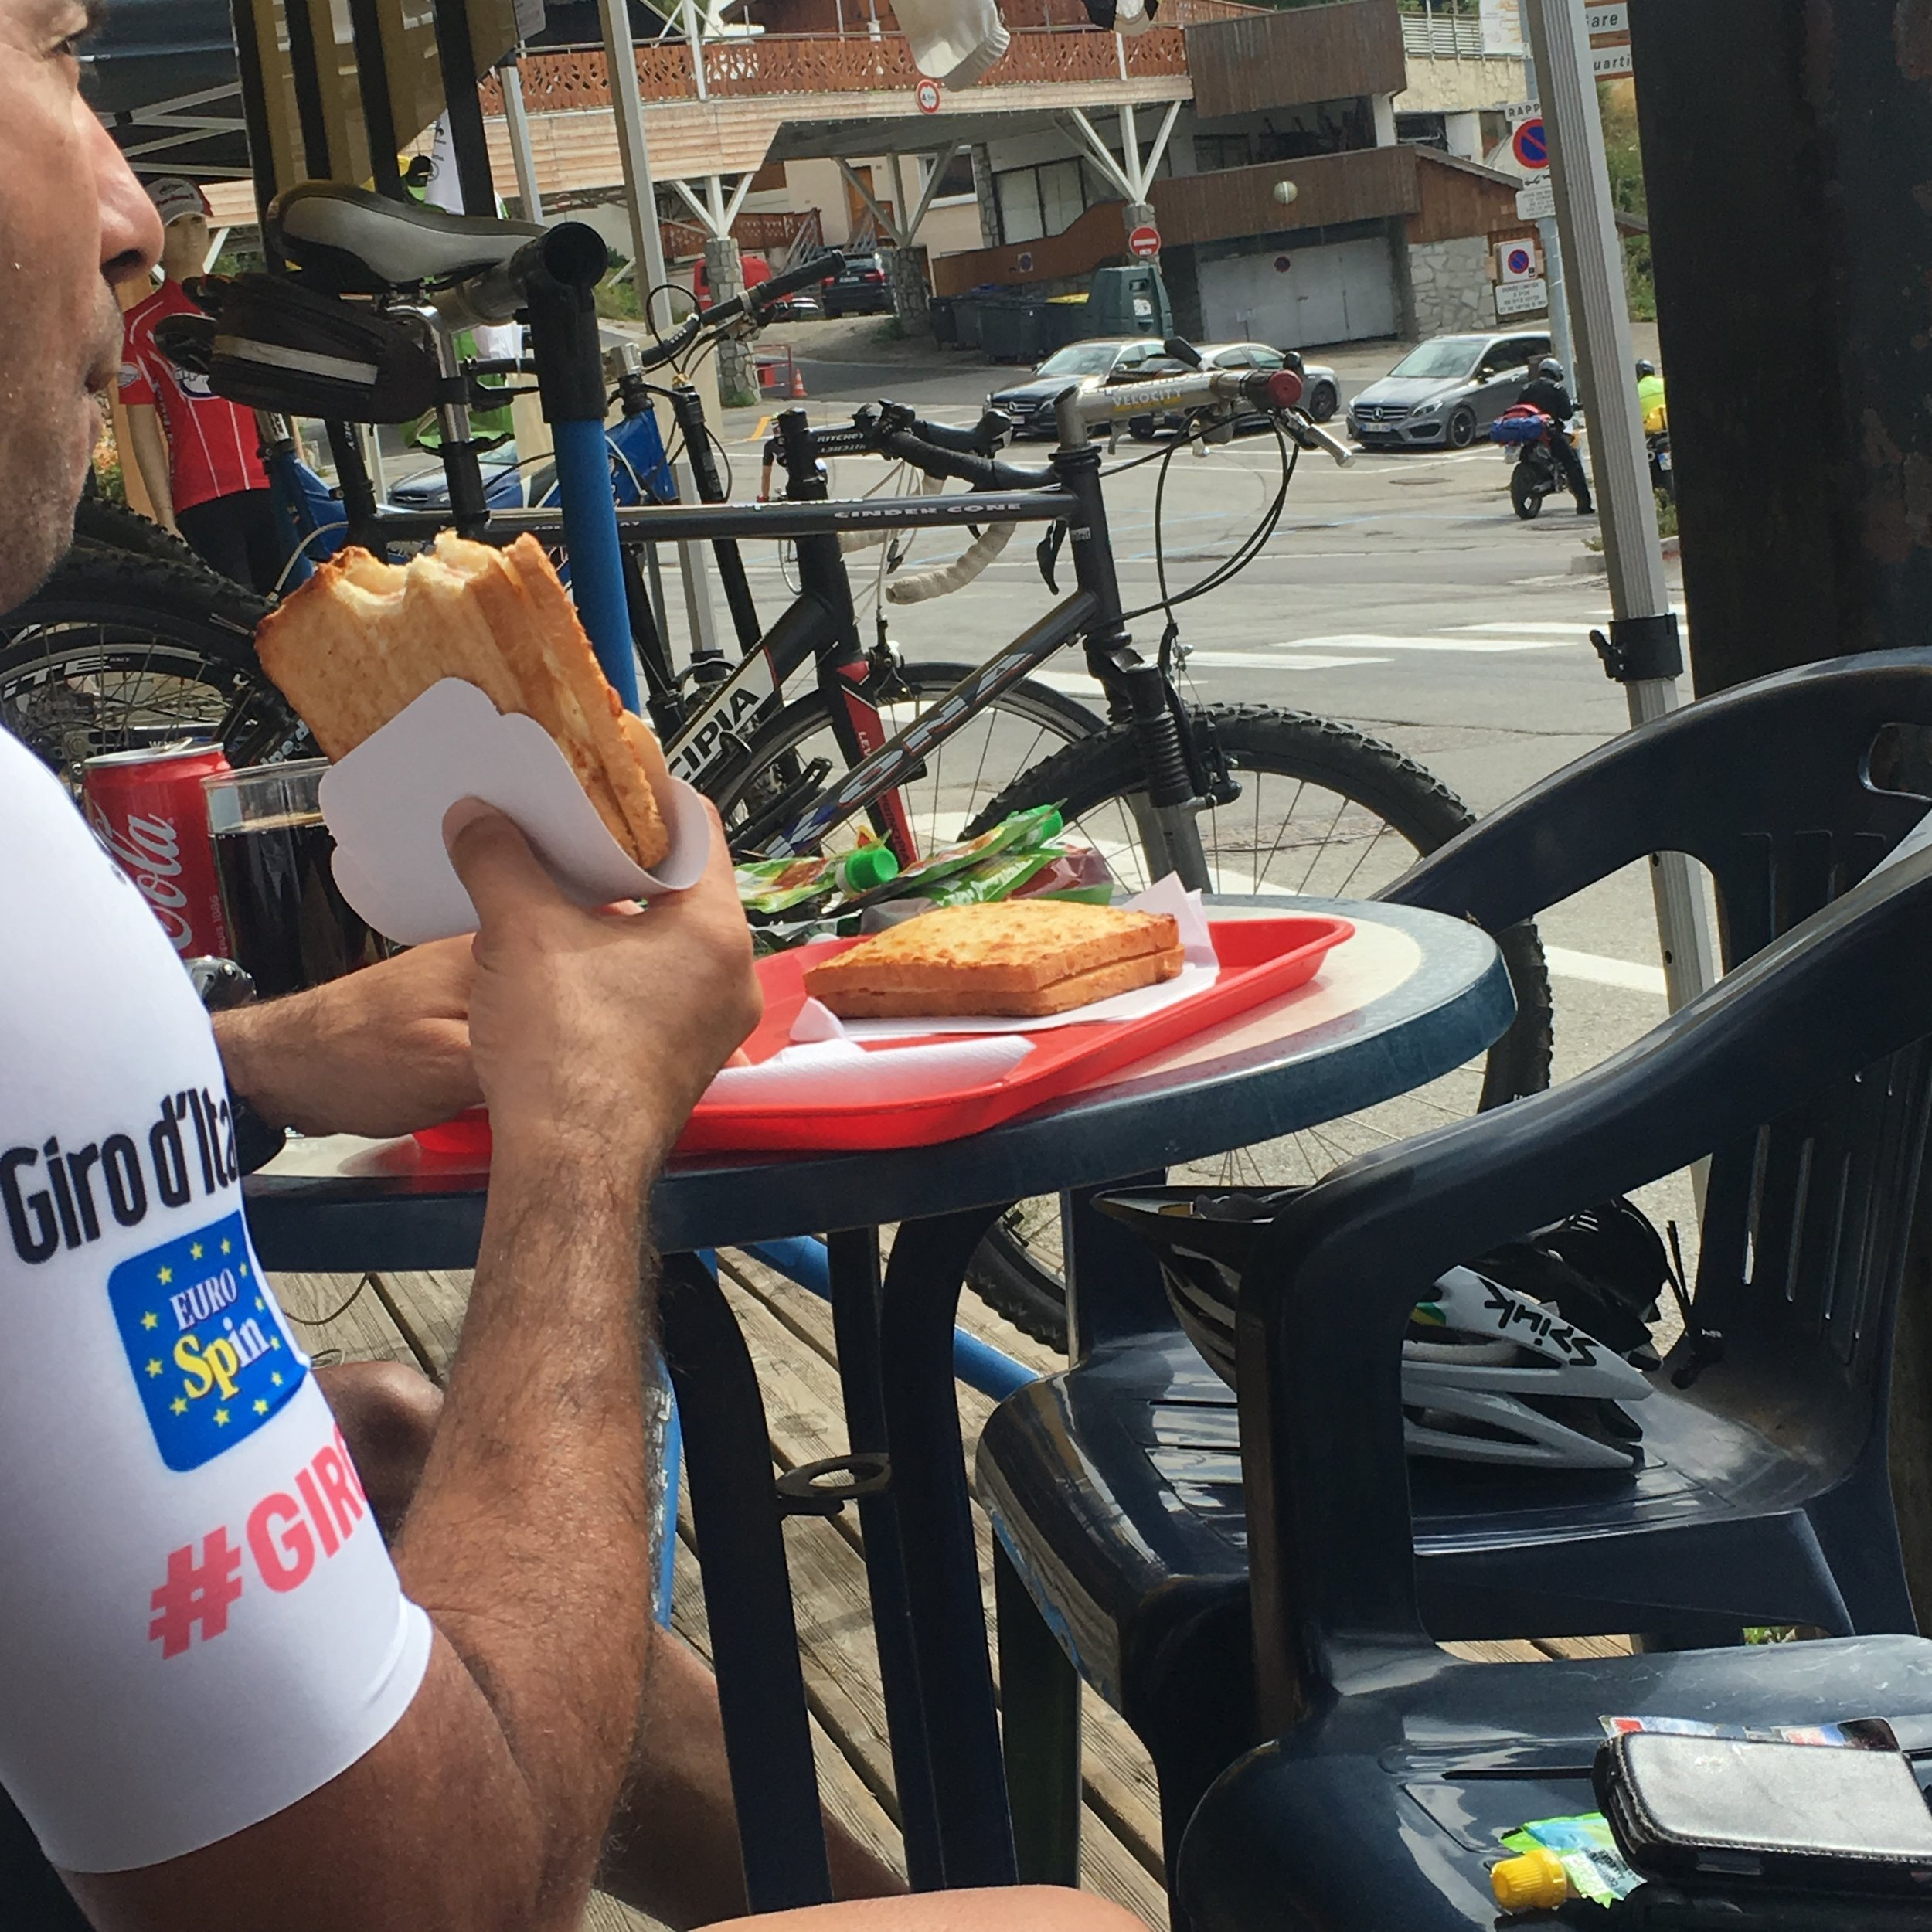 French cyclists love sandwich stops!